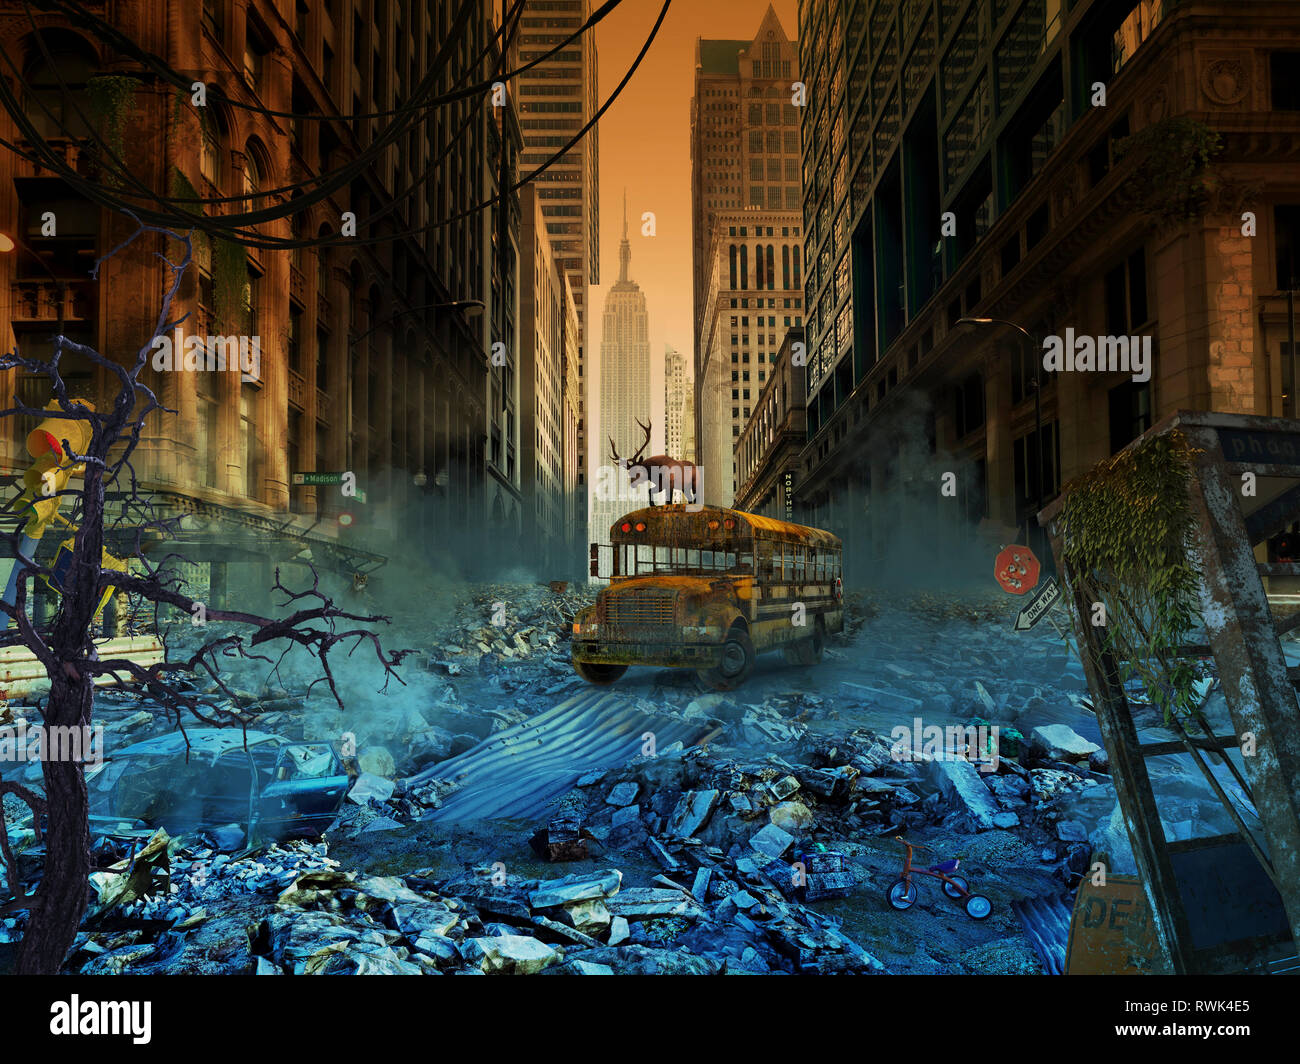 Abandoned school bus in an apocalyptic New York City, composite image - Stock Image